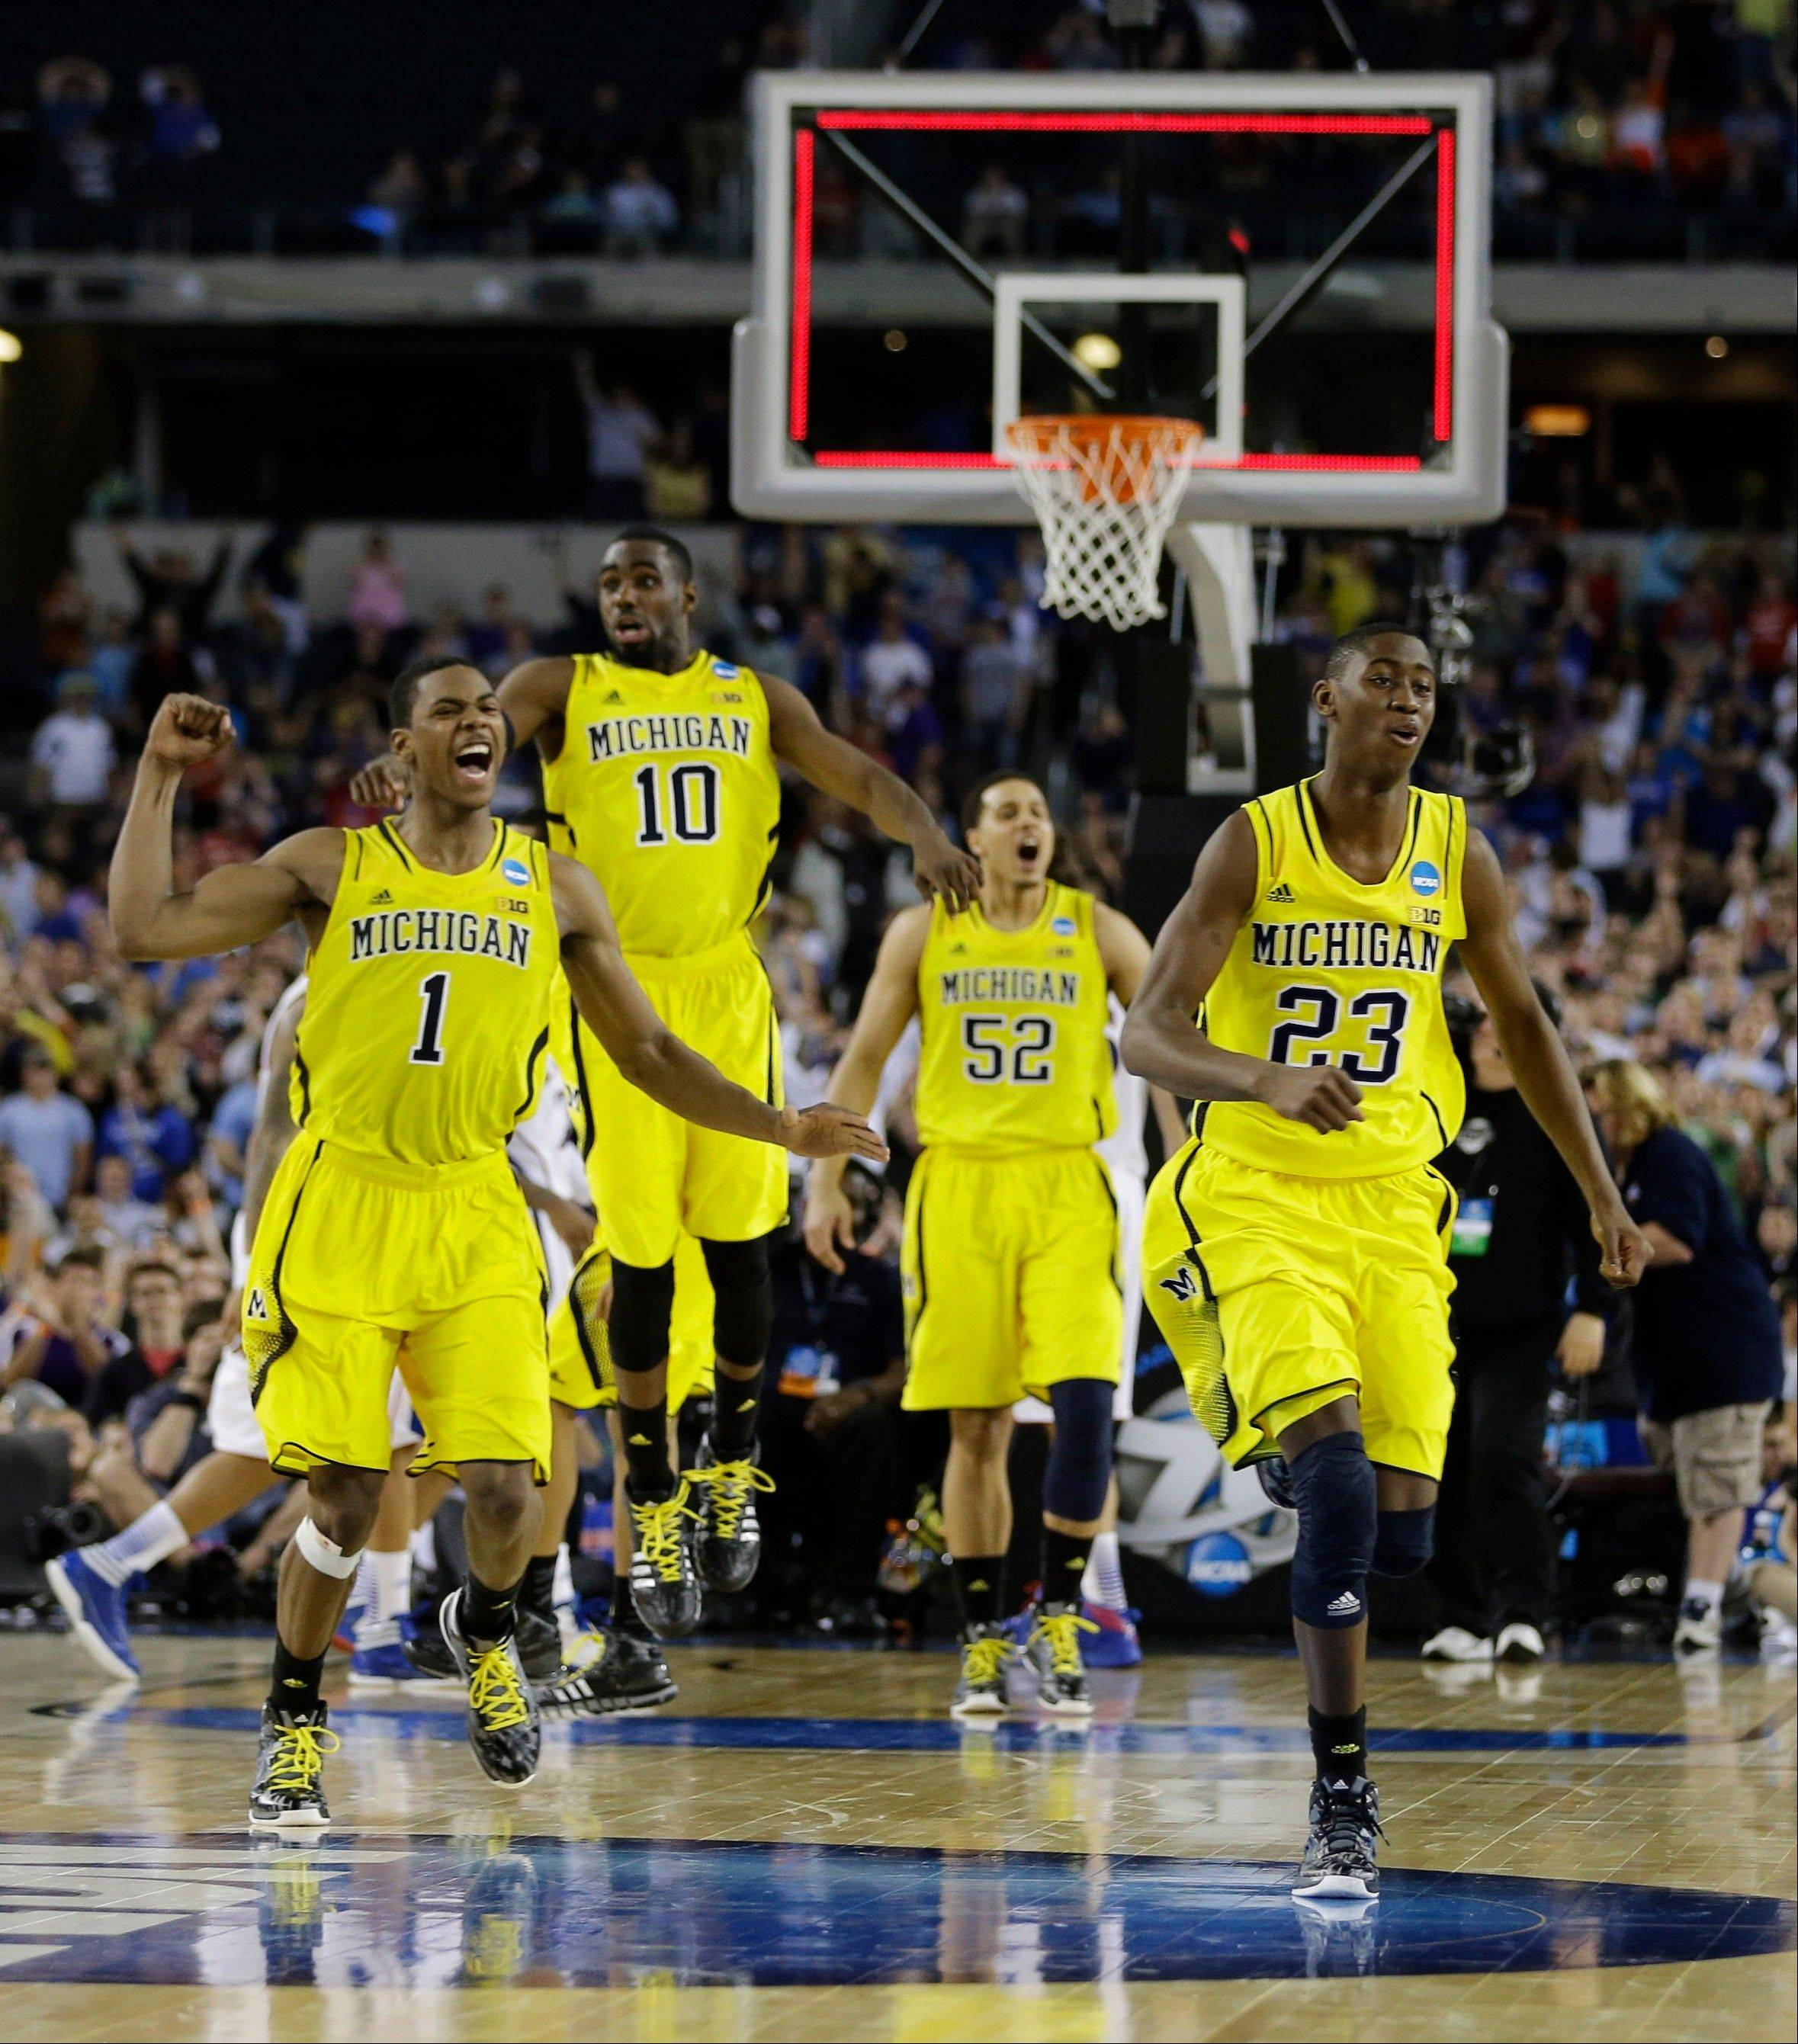 Michigan's Glenn Robinson III (1), Tim Hardaway Jr. (10), Jordan Morgan (52), Caris LeVert (23) celebrate after beating Kansas 87-85 in overtime of a regional semifinal game in the NCAA college basketball tournament, Friday, March 29, 2013, in Arlington, Texas.